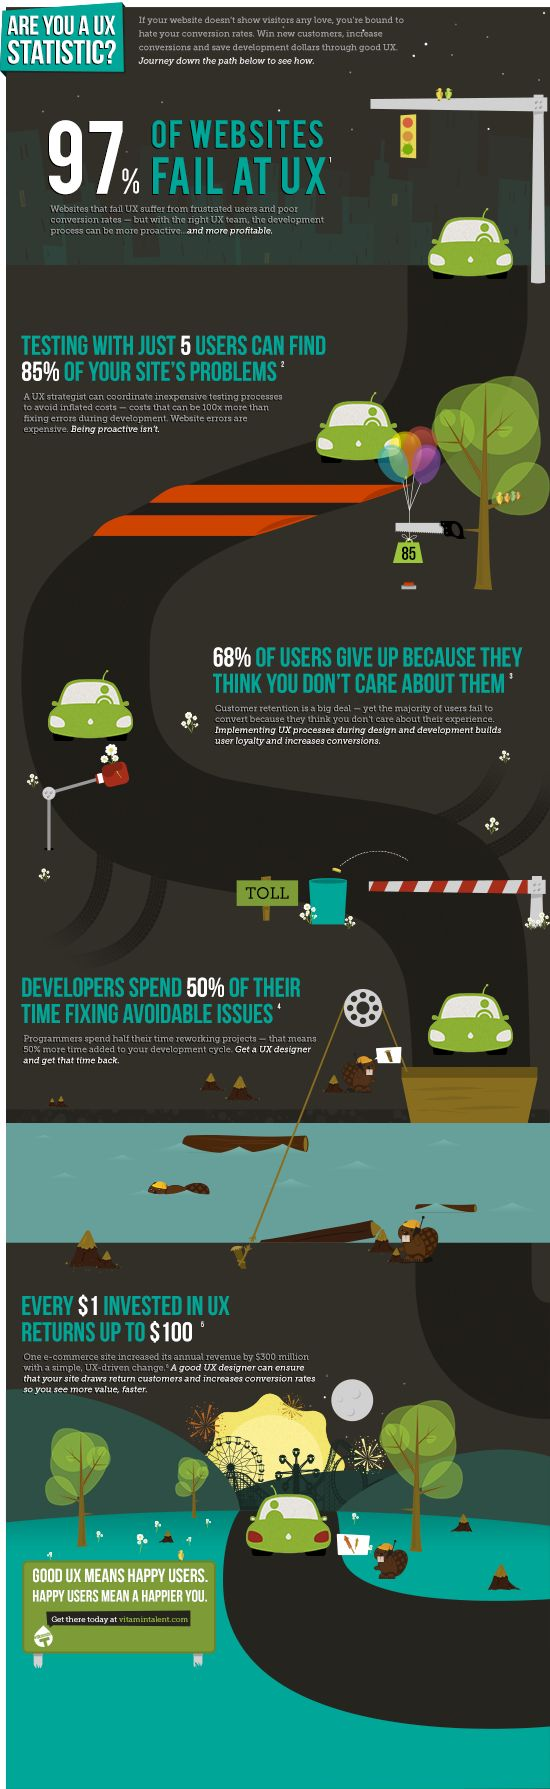 Are you a UX statistic?